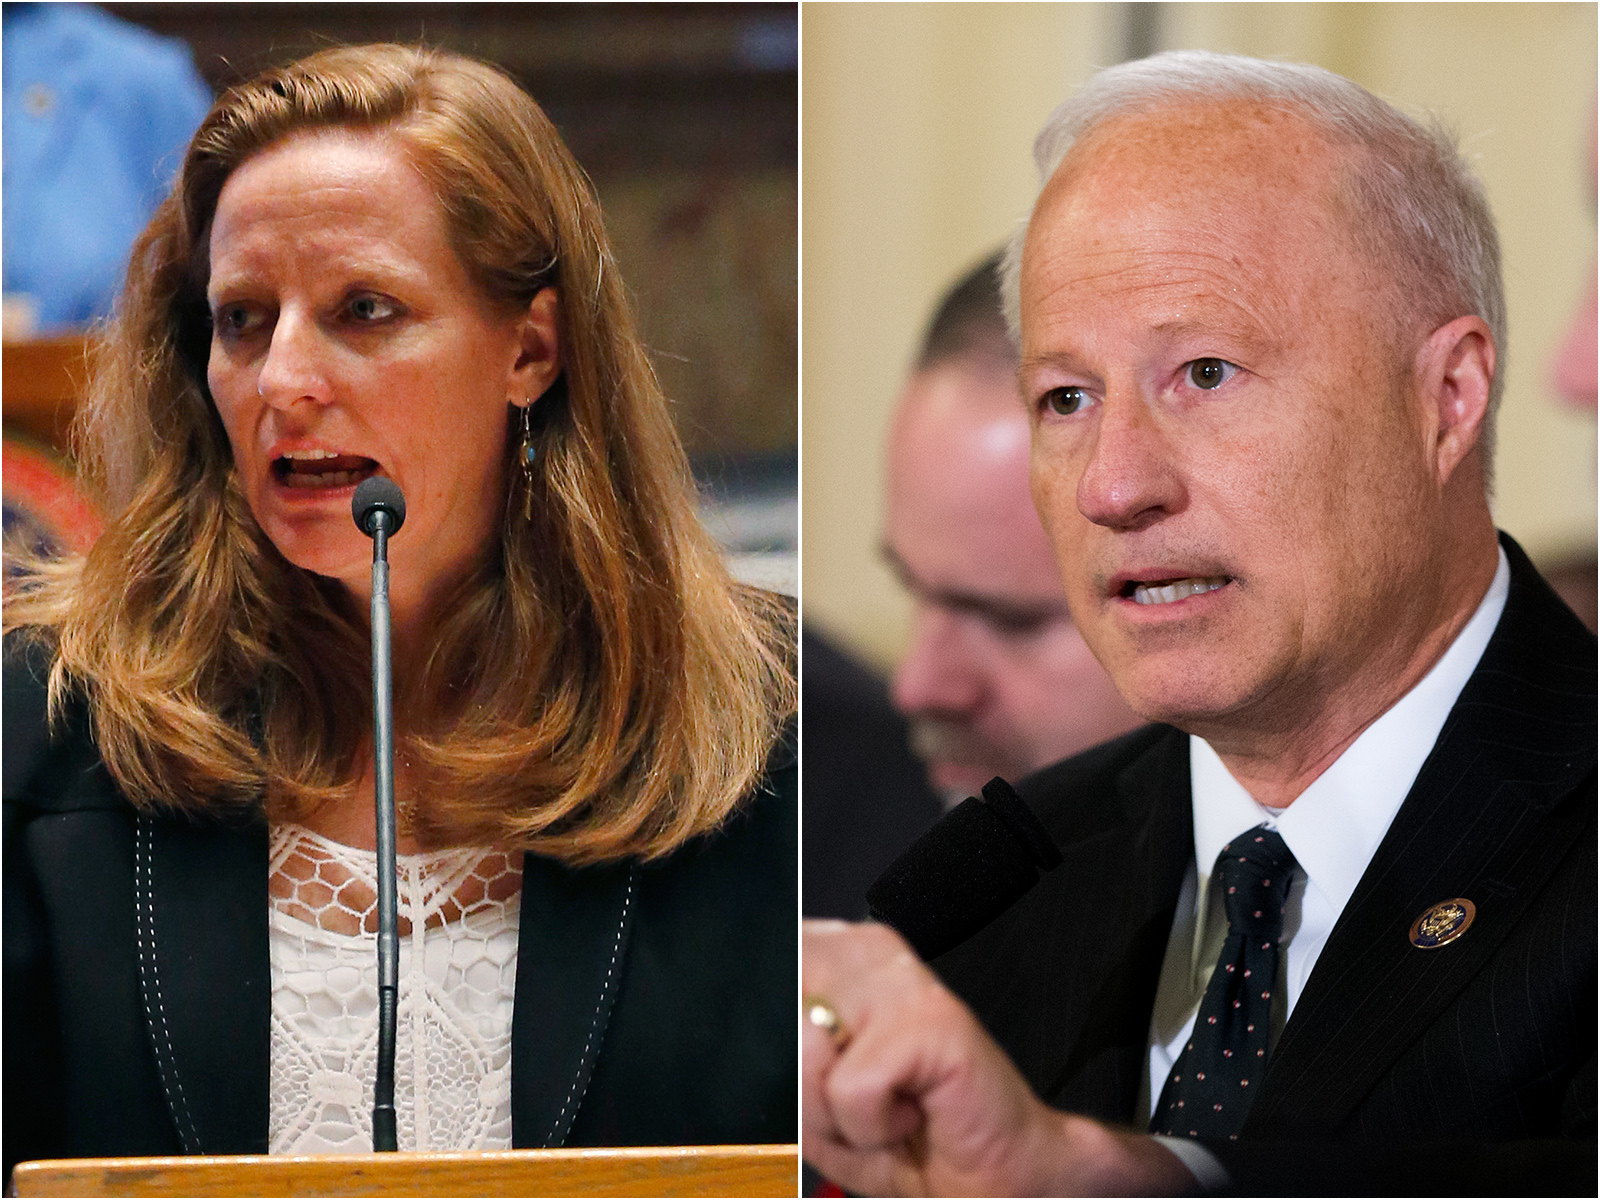 <p>State Sen. Morgan Carroll, D-Aurora, left, is challenging Republican U.S. Rep. Mike Coffmann in Colorado's 6th Congressional District.</p>